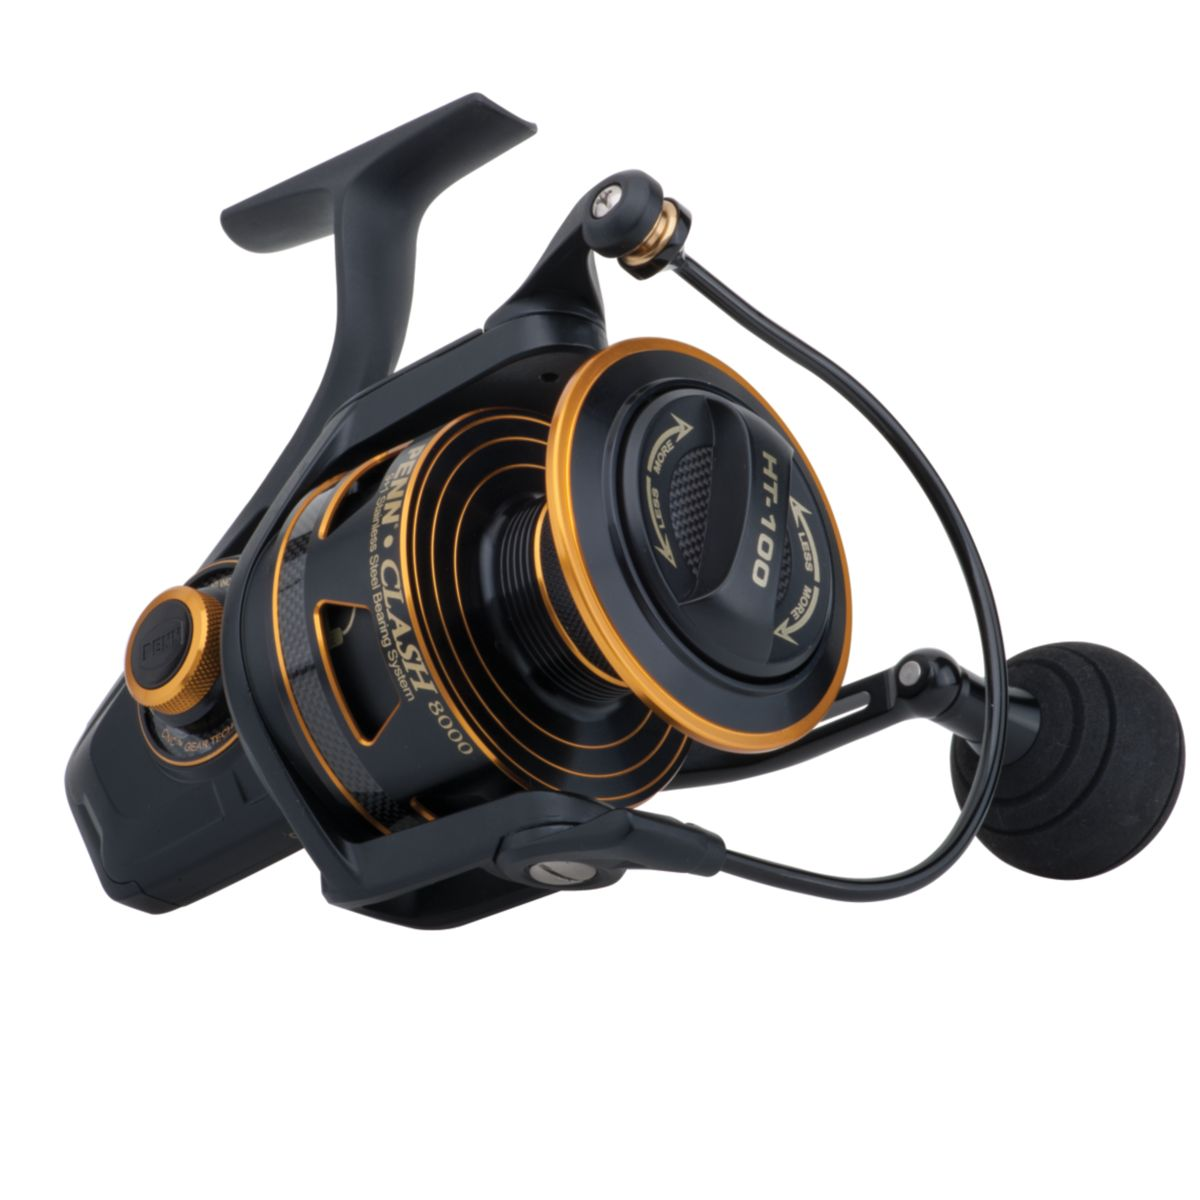 Penn Clash CLA6000 Spinning Reel